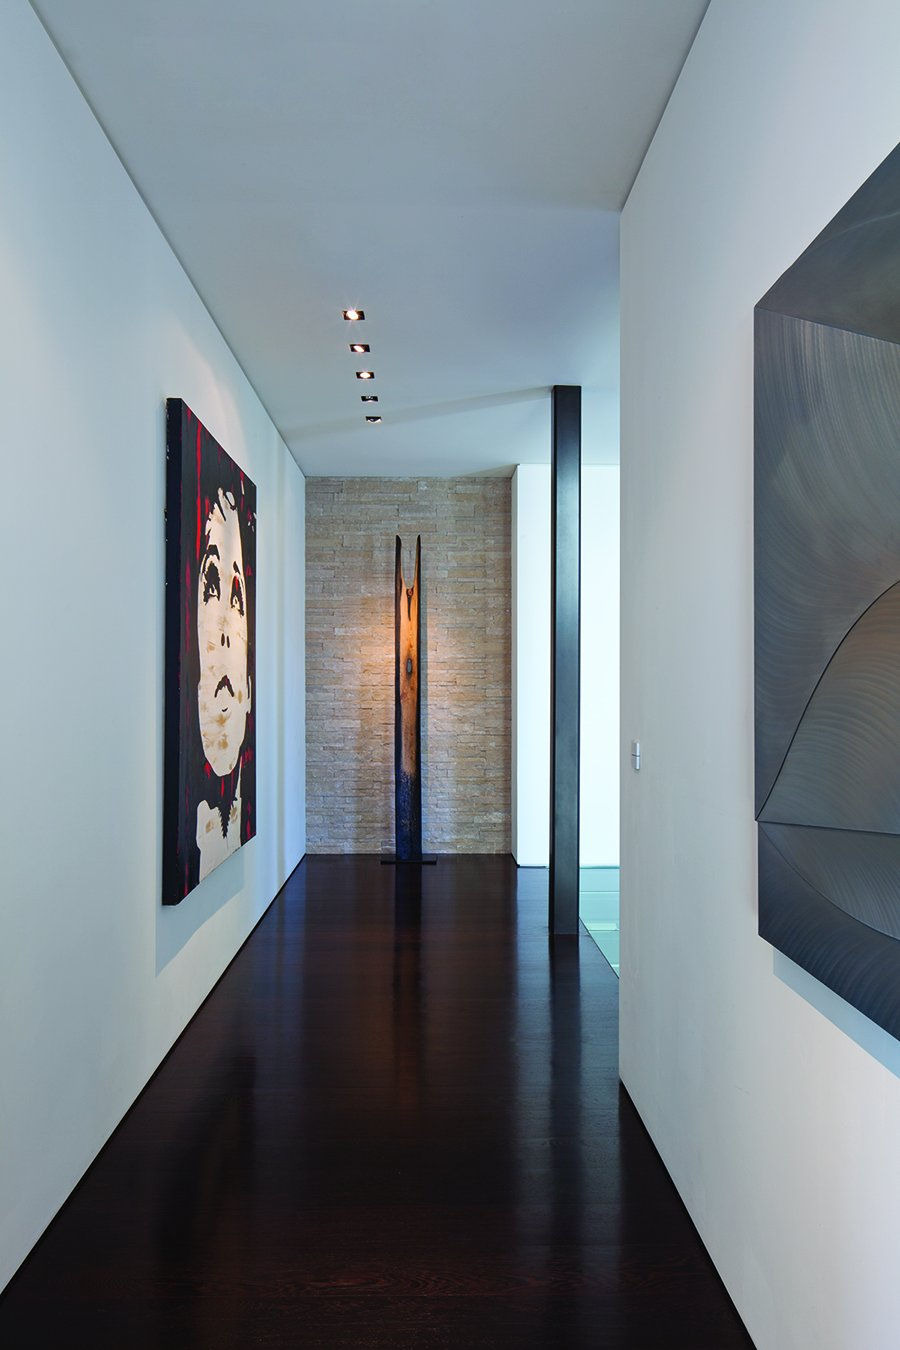 Art gallery styled corridor